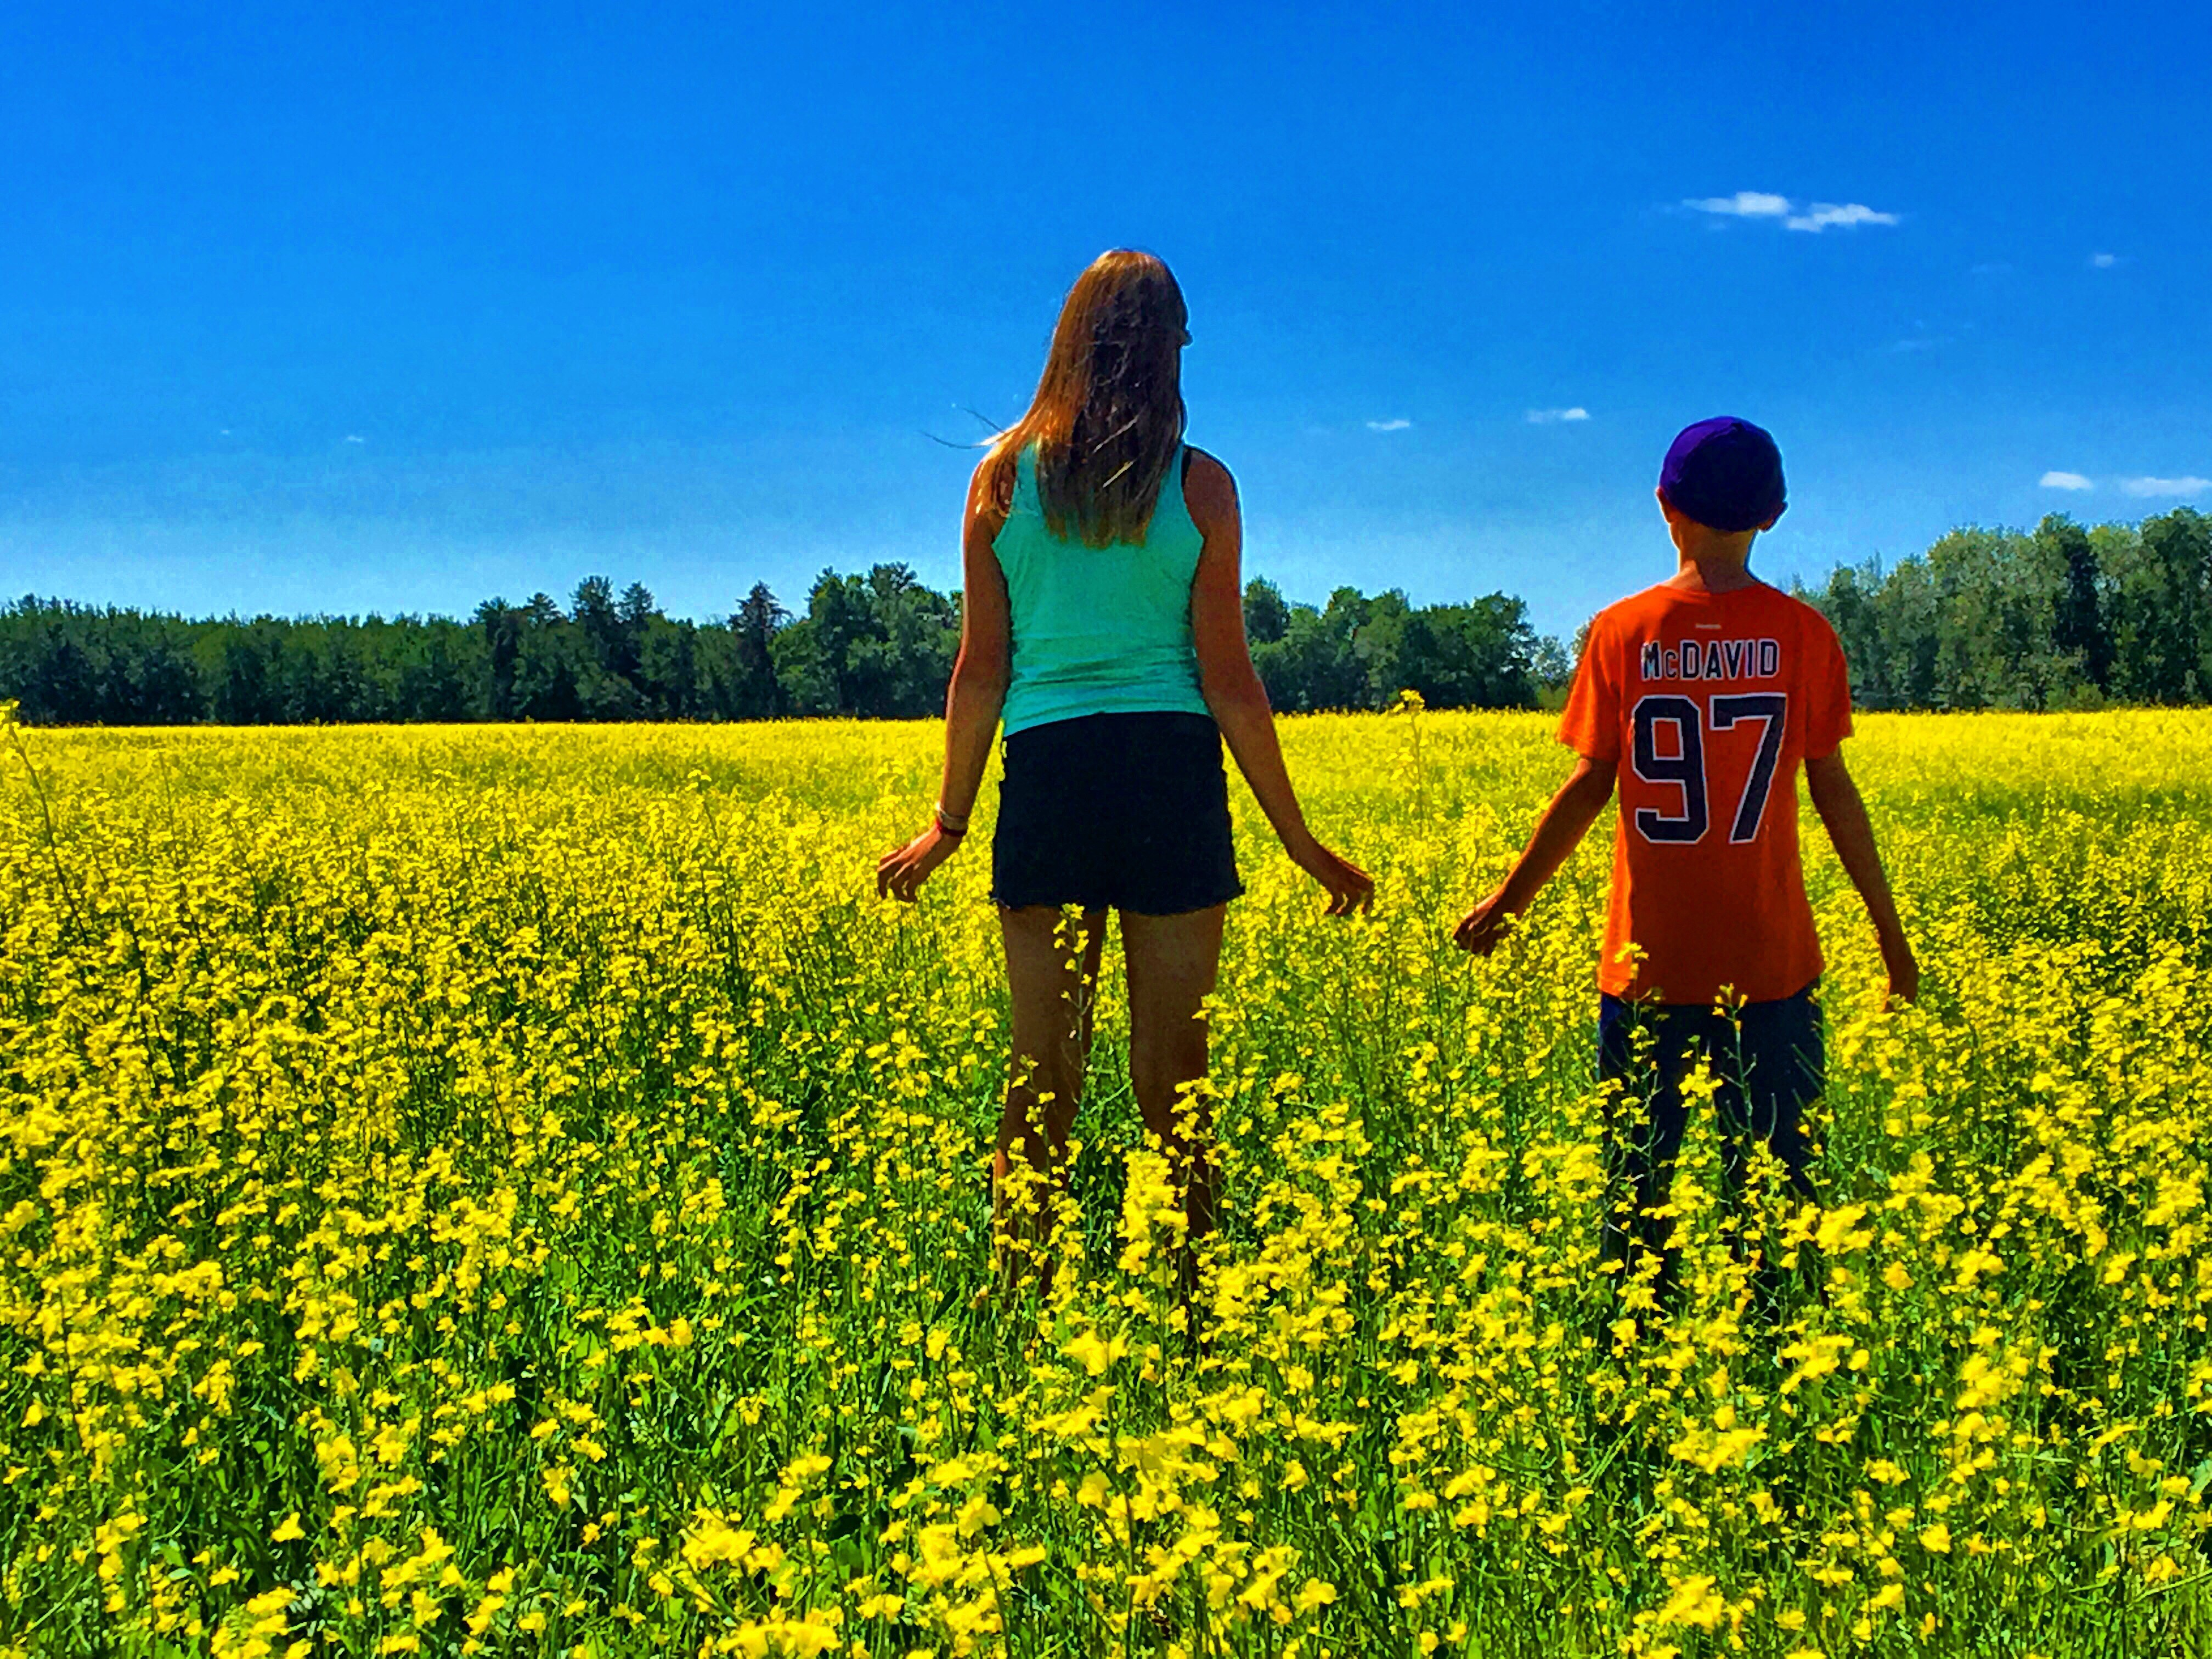 A Mother Allows Her Children To Walk Into A Gmo Field Sprayed With